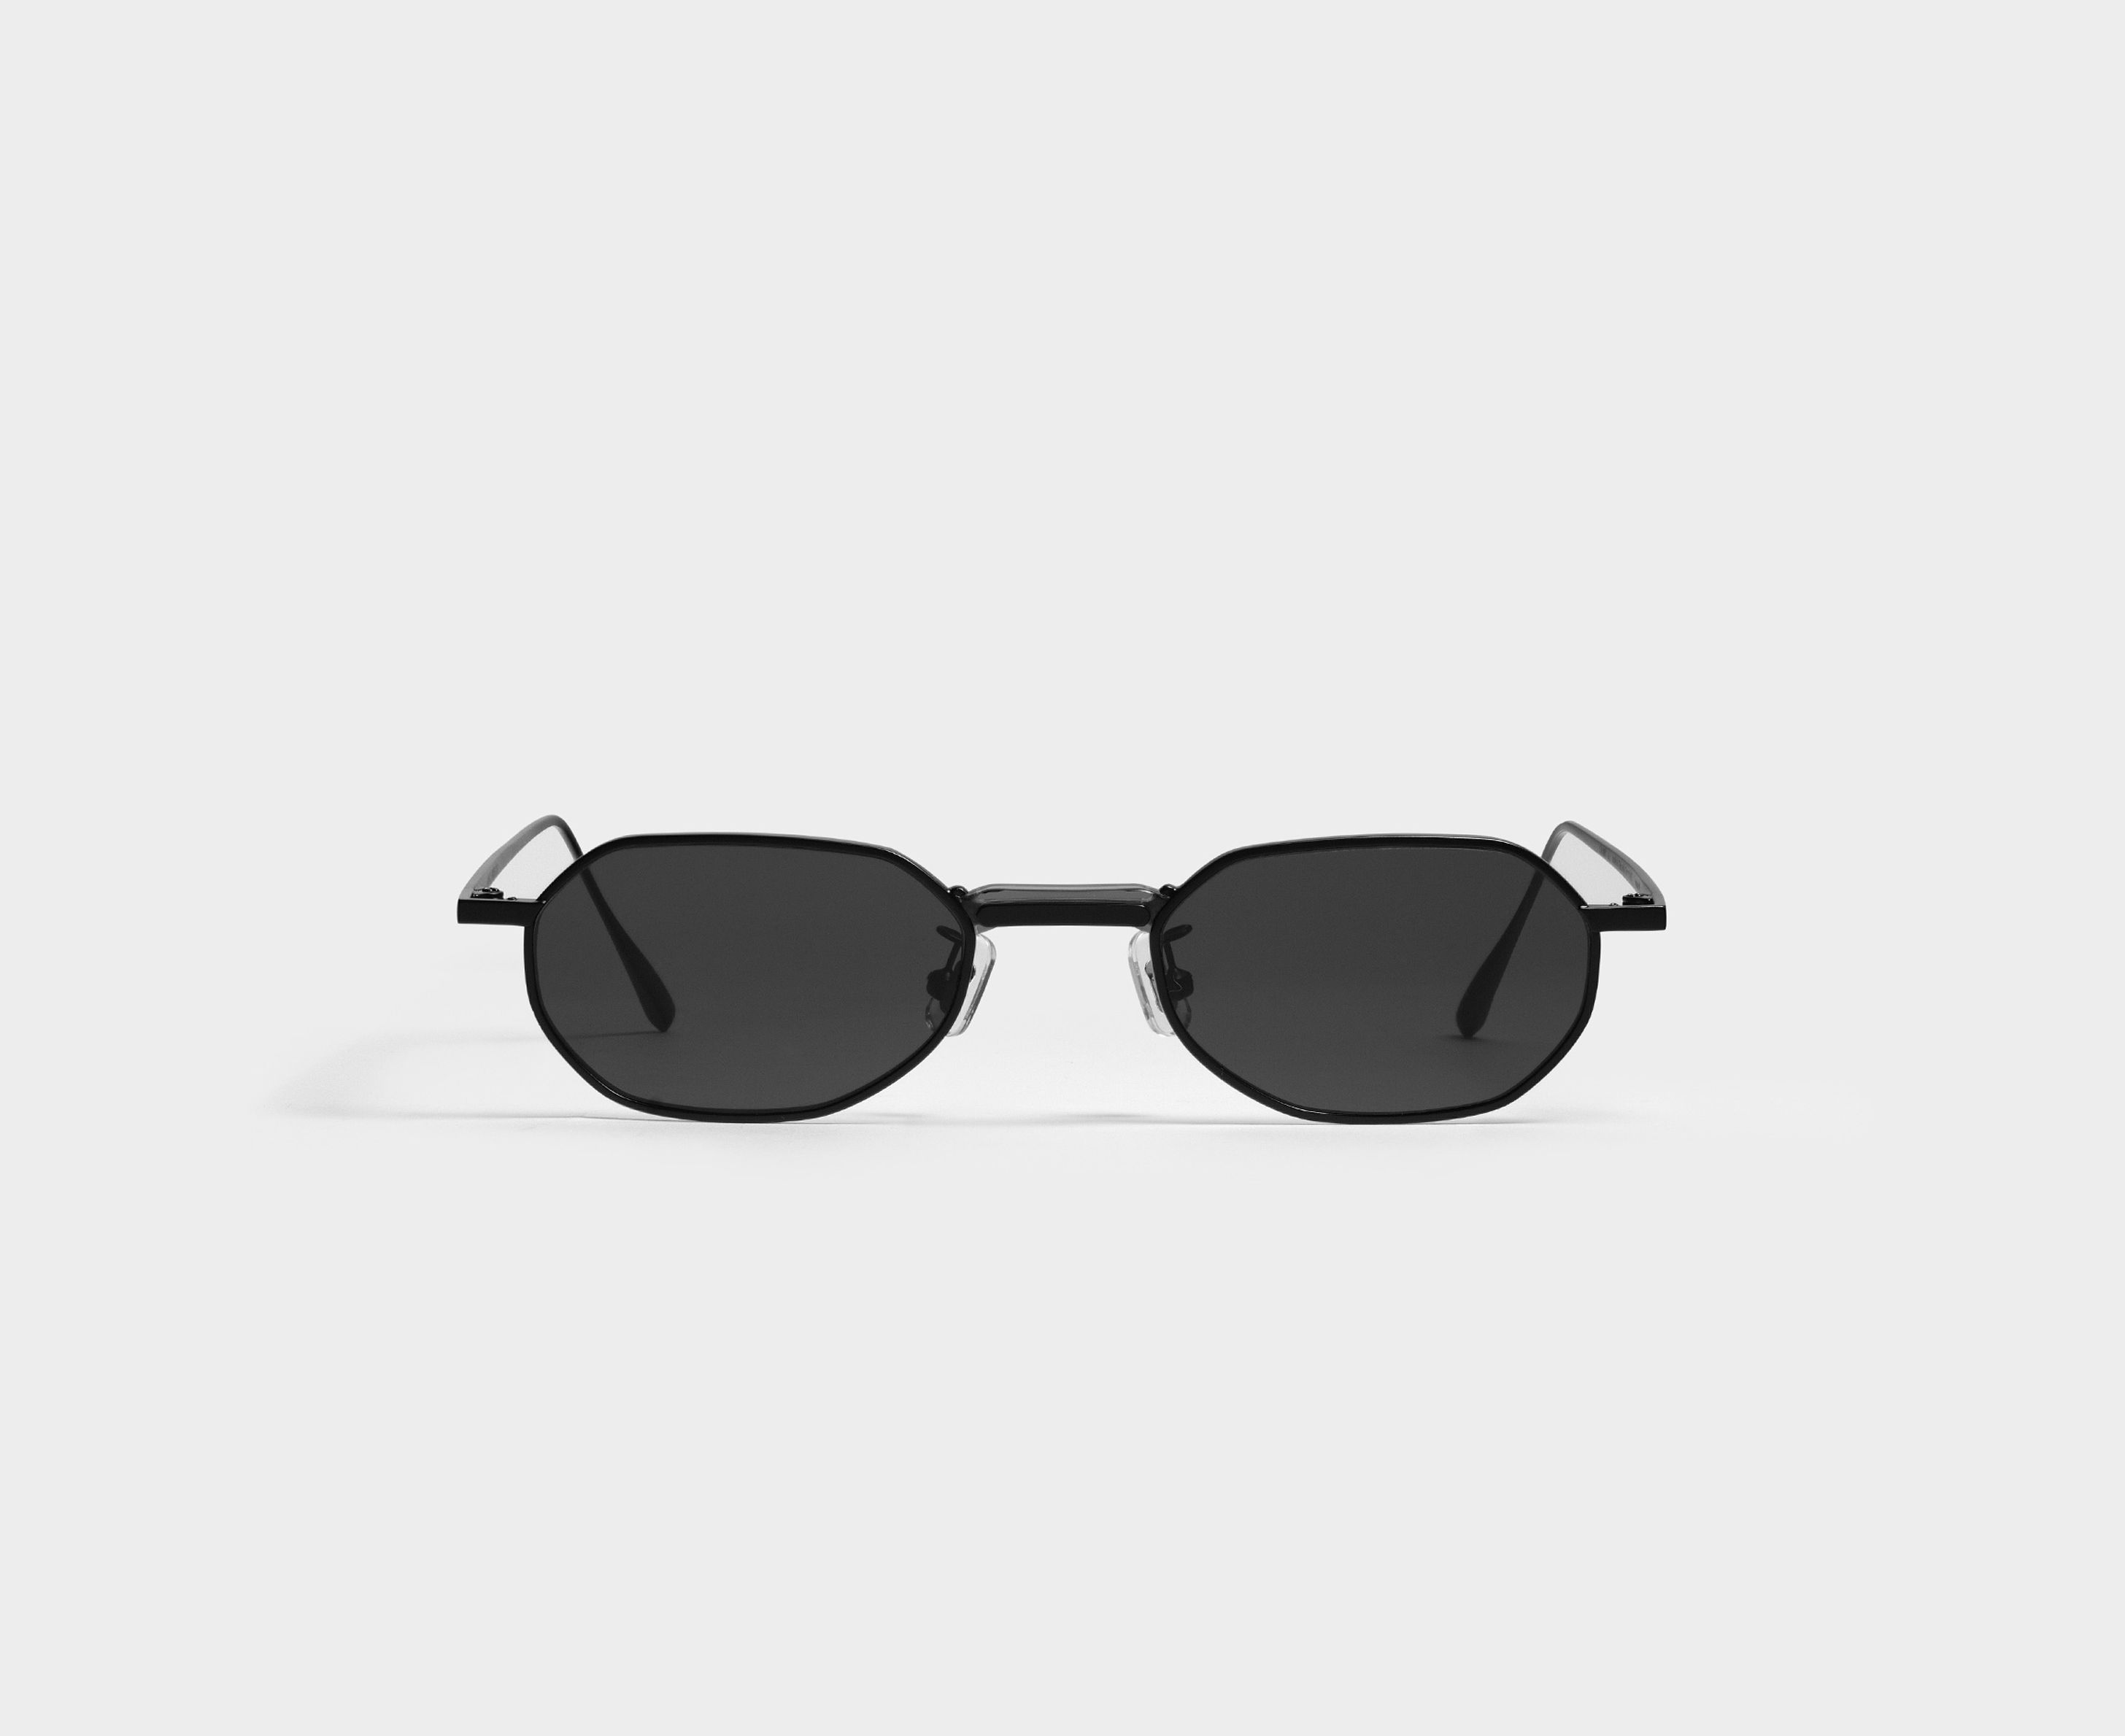 The Voyager M M01 Is An Octagonal Frame Re Invented With A Unique Connector Bridge This Style Updates Aspects Of Stylish Glasses Glasses Fashion 90s Glasses